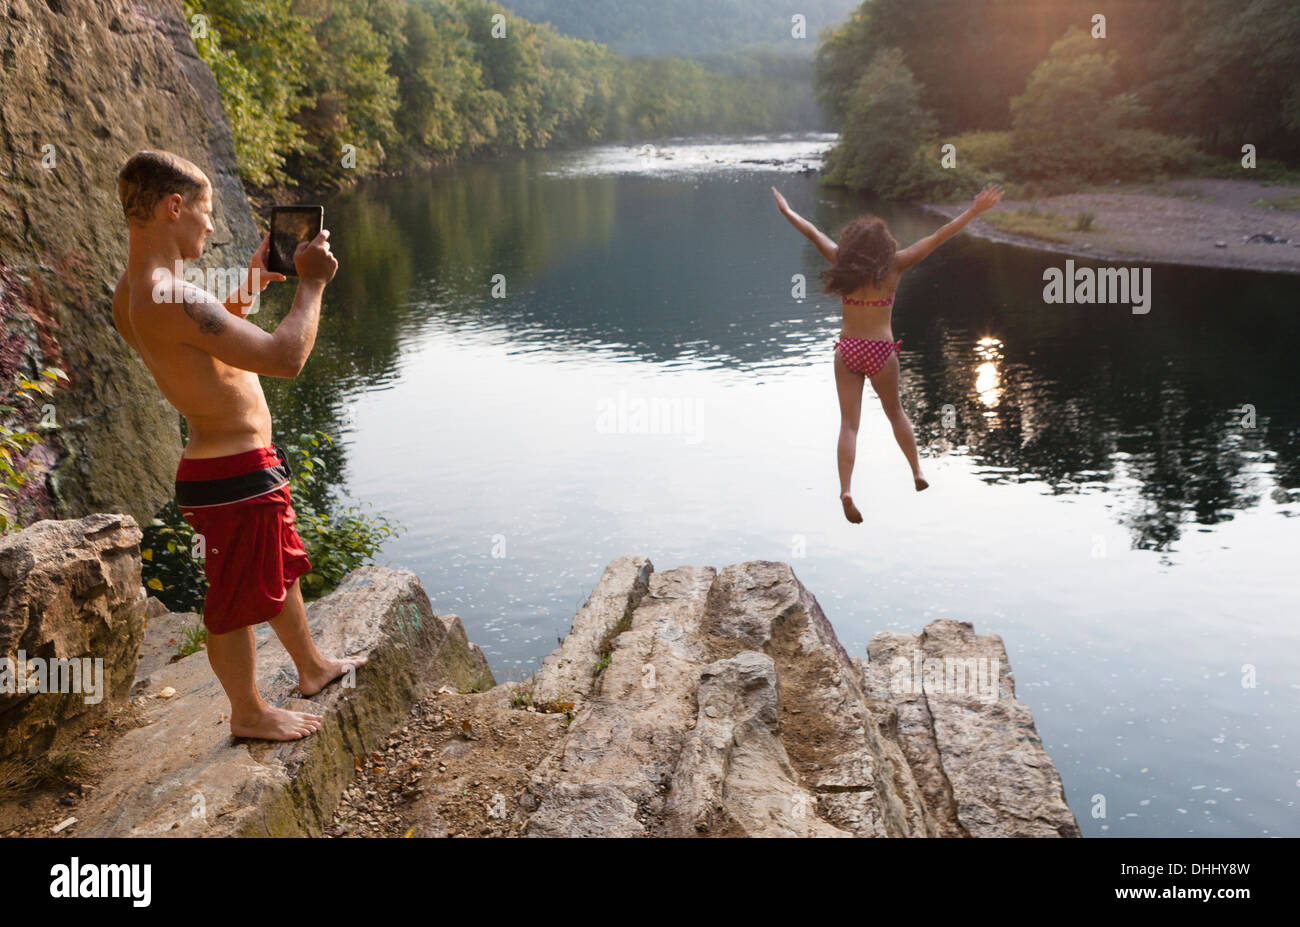 Young couple photographing jump from rock ledge, Hamburg, Pennsylvania, USA - Stock Image